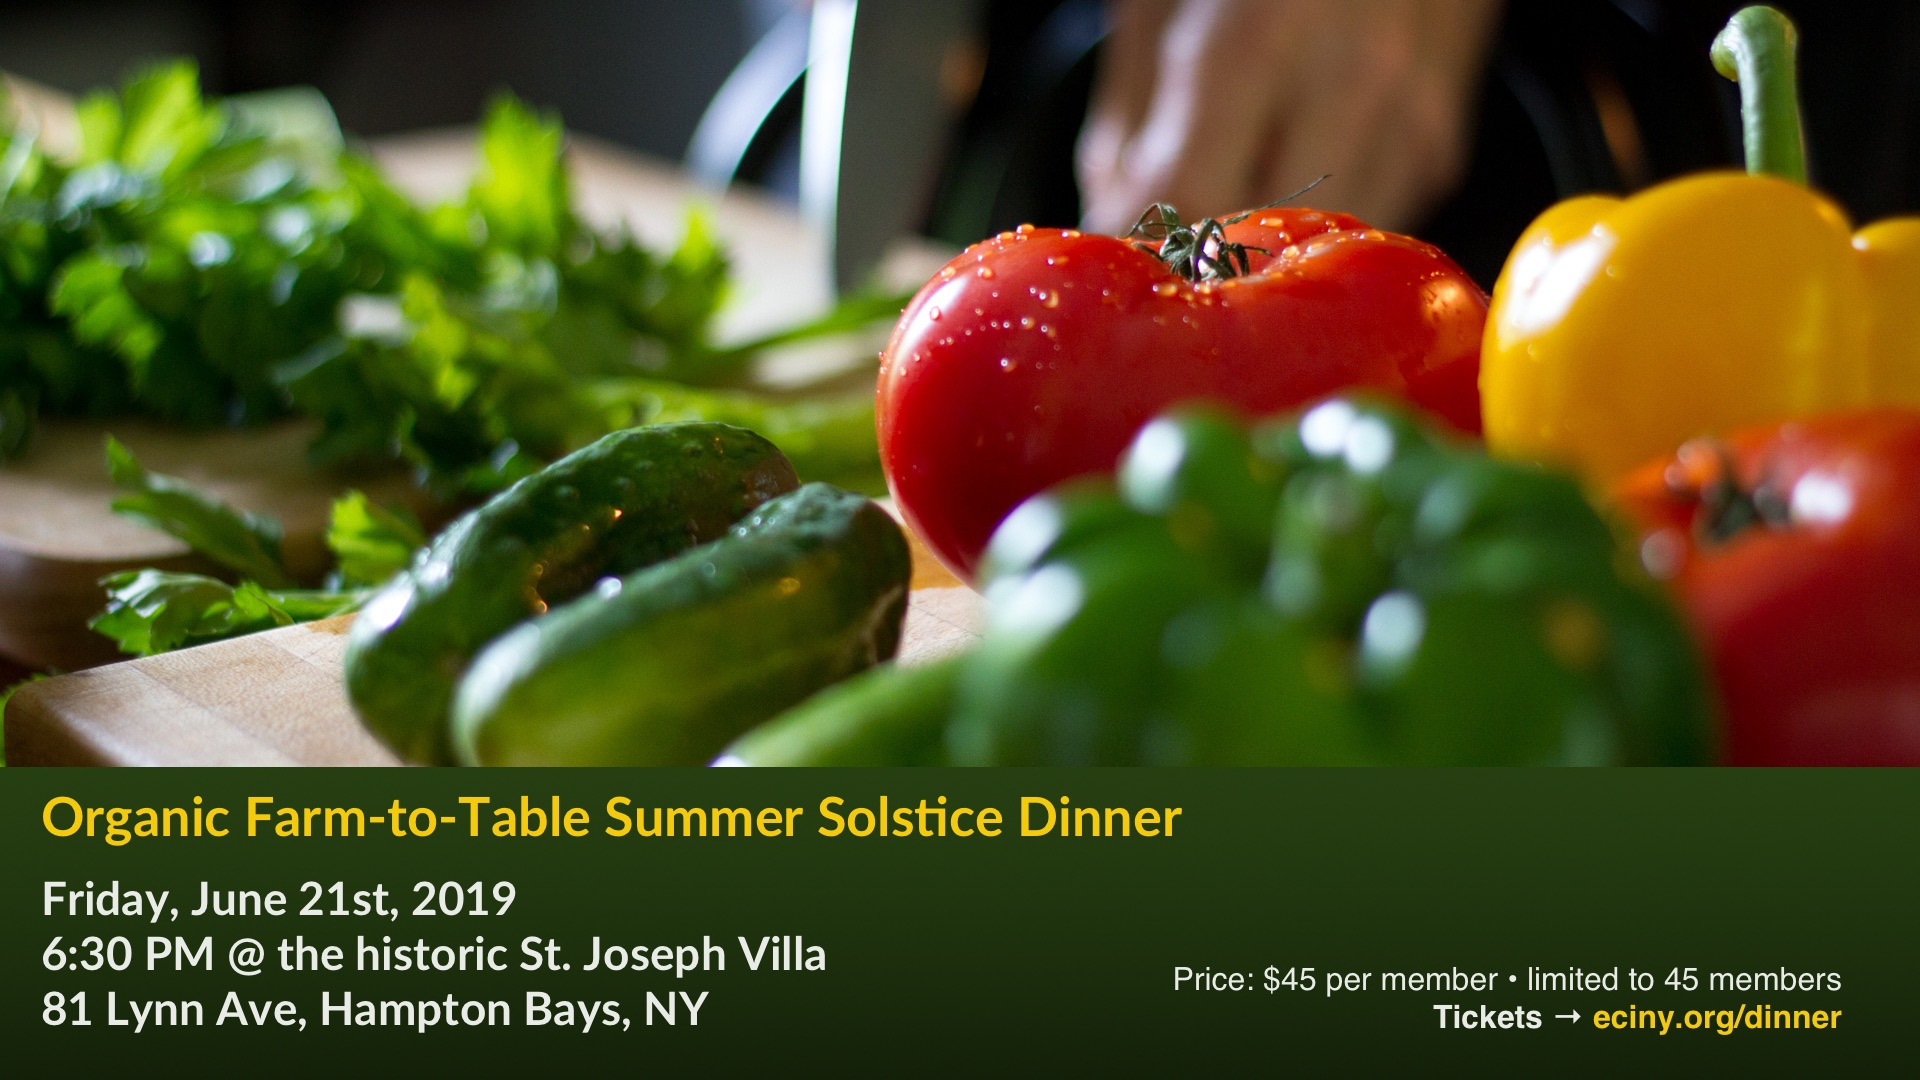 Organic Farm-to-Table Summer Solstice Dinner - Jun 21, 2019 - FB cover 1920x1080.jpg